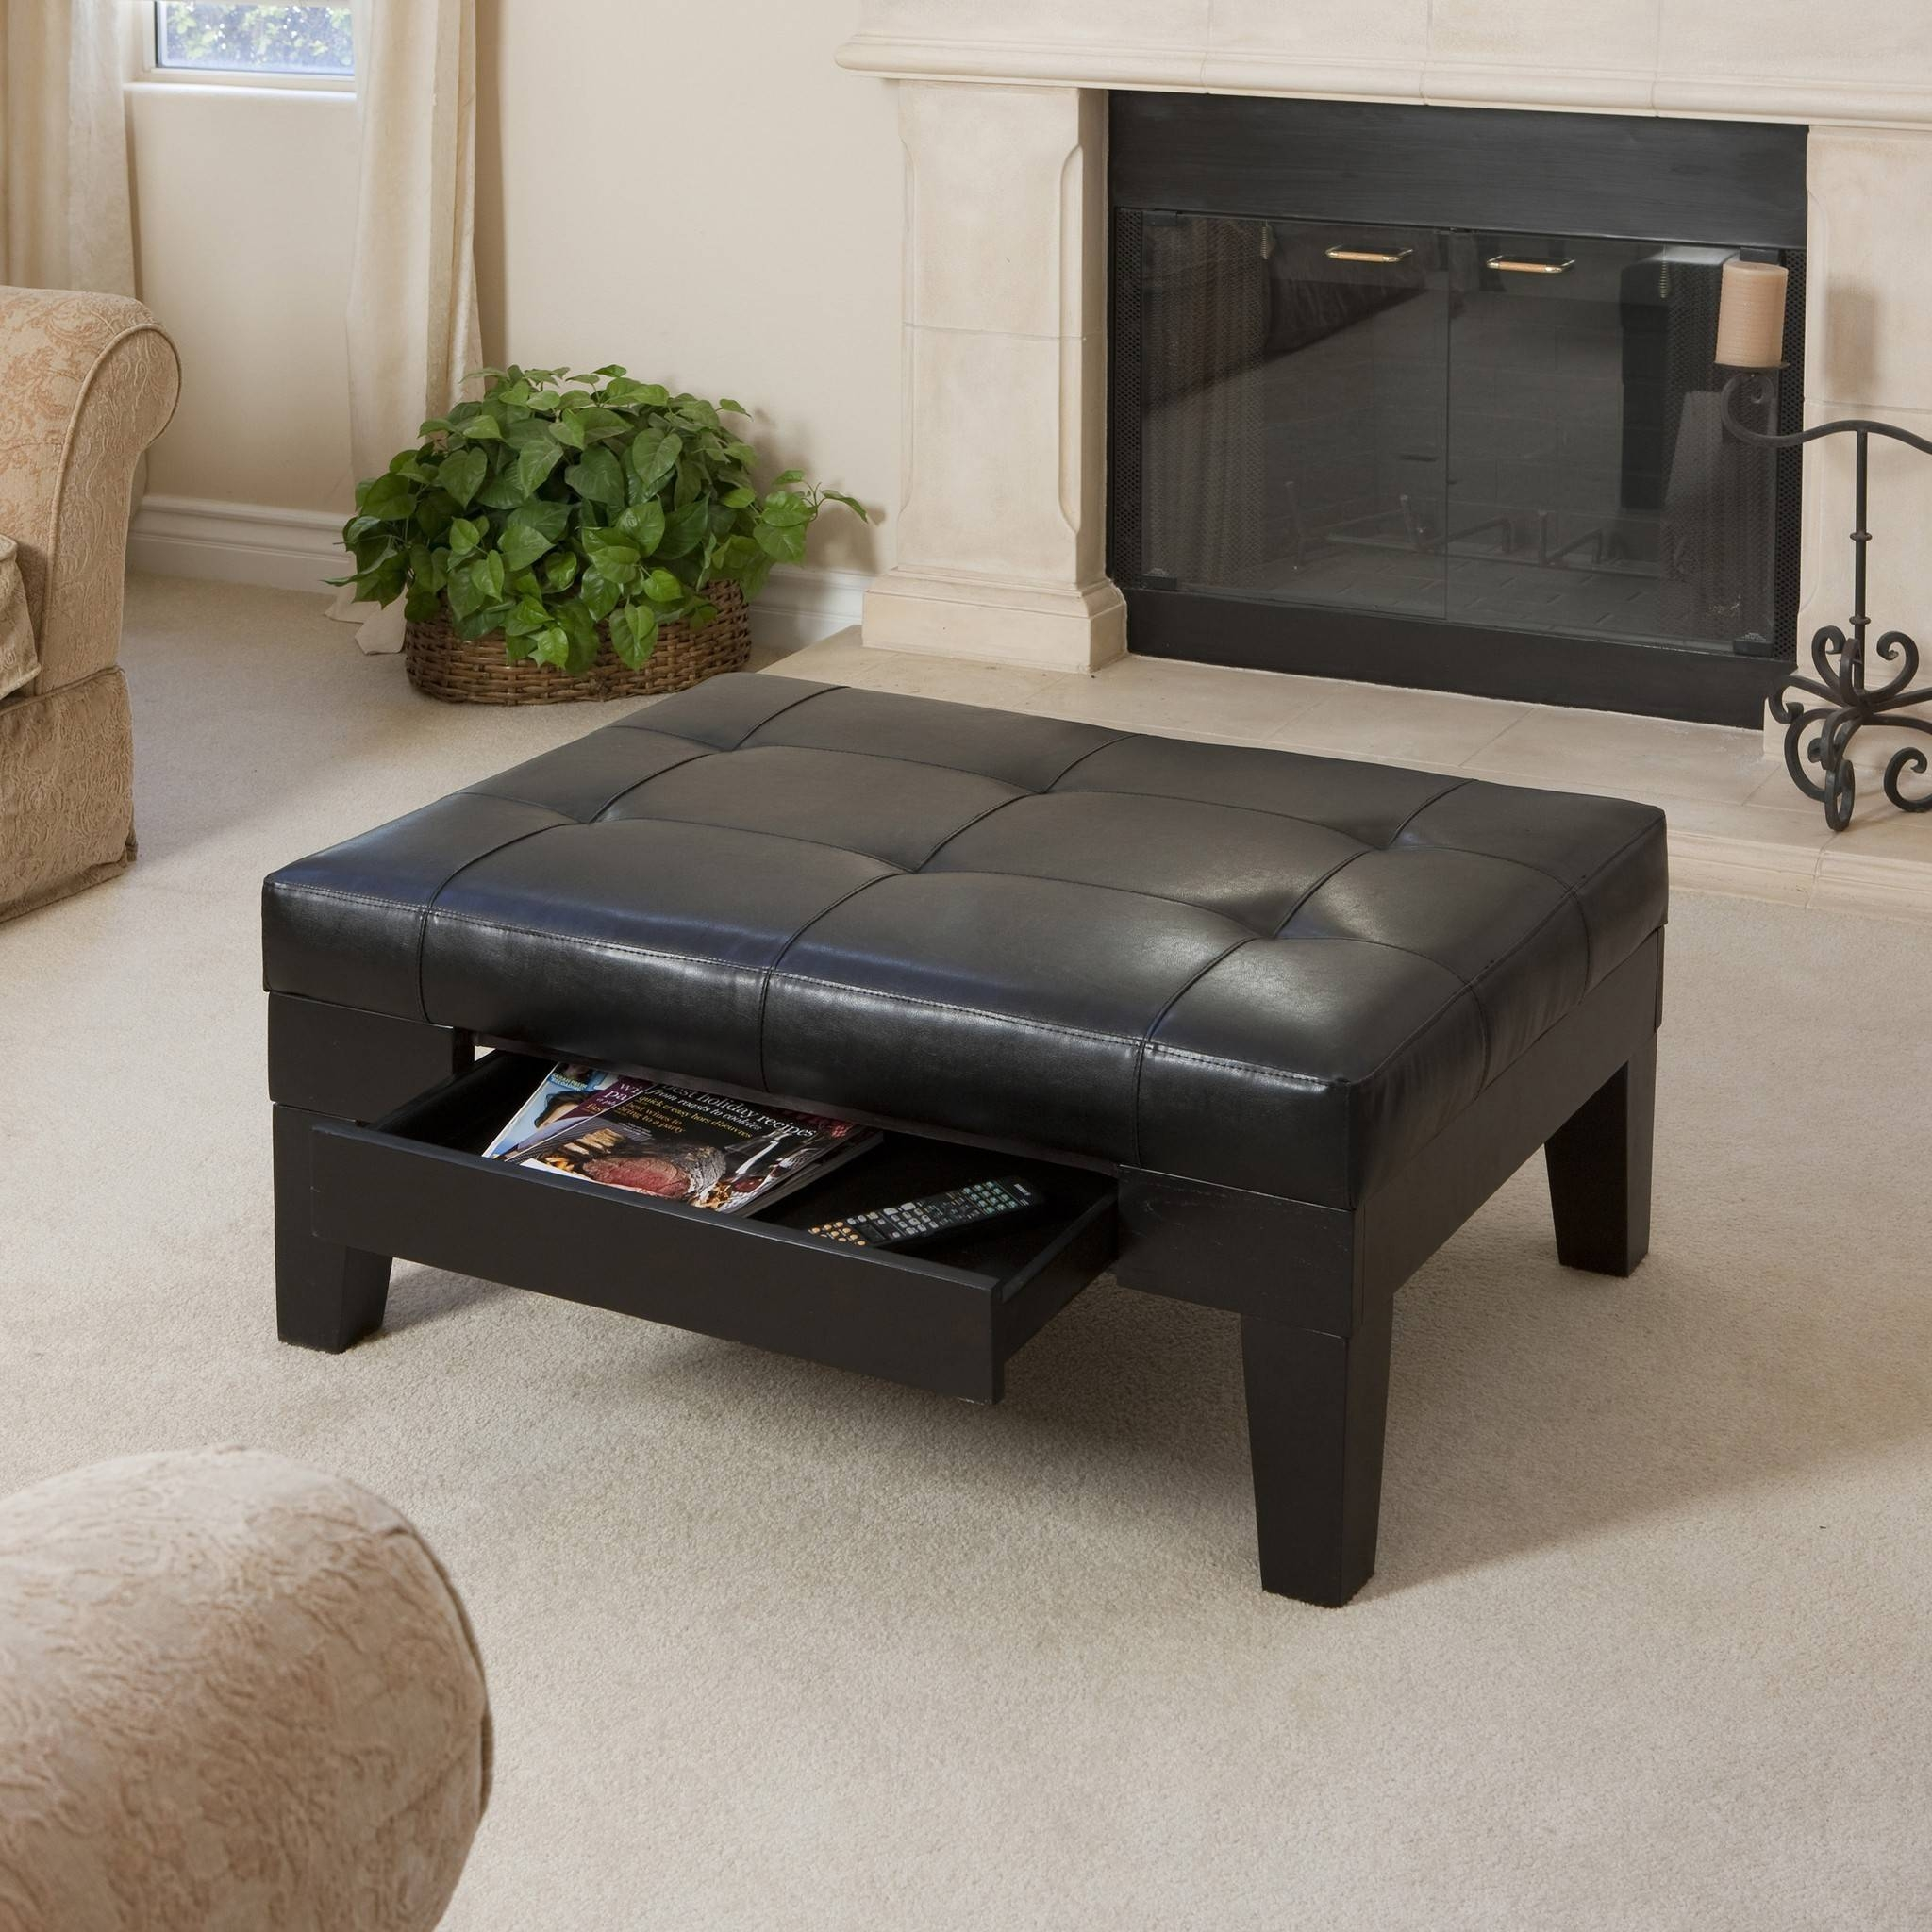 Furniture. Black Ottoman Coffee Table Design Ideas: Square Vintage in Coffee Tables With Magazine Storage (Image 16 of 30)